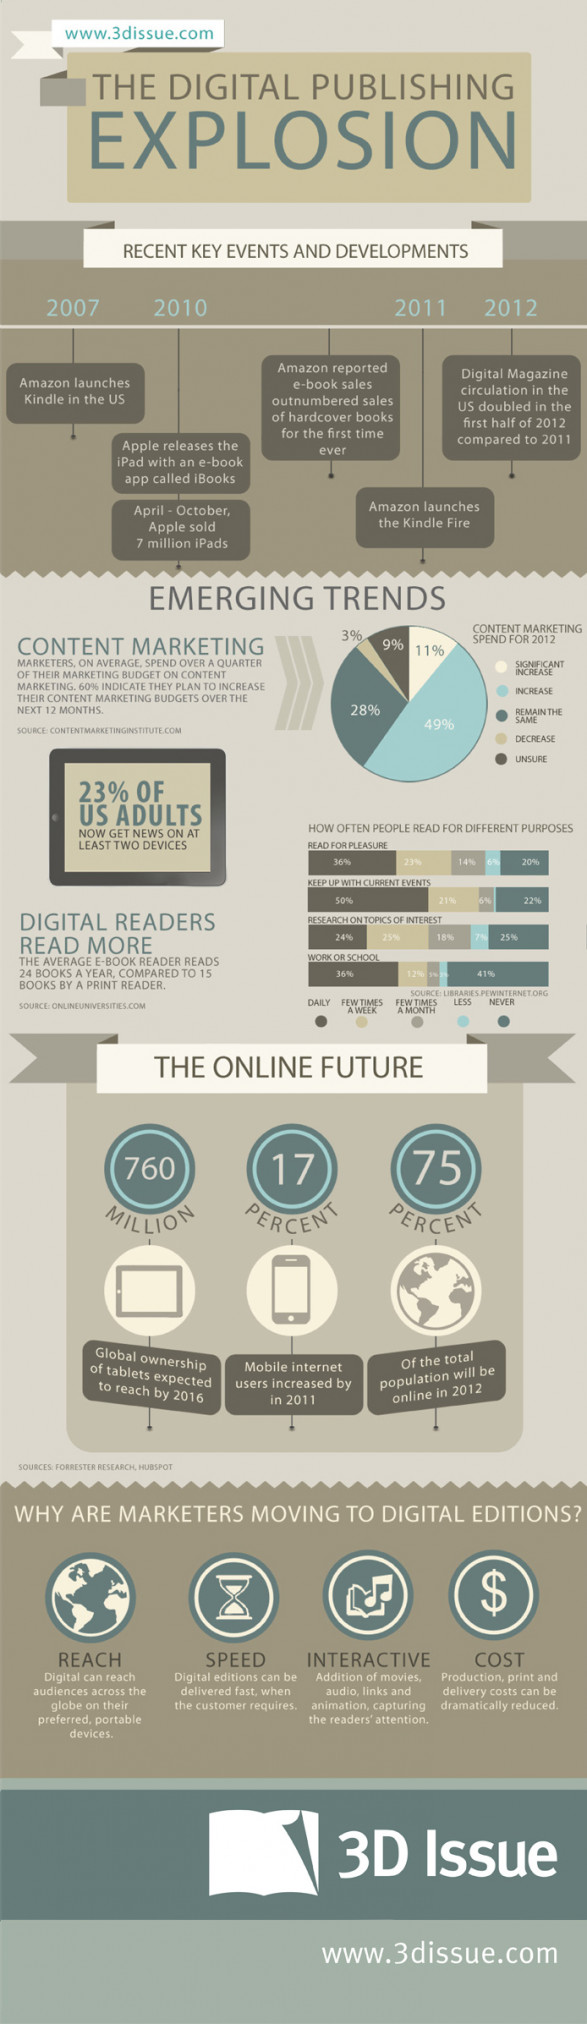 The Digital Publishing Explosion